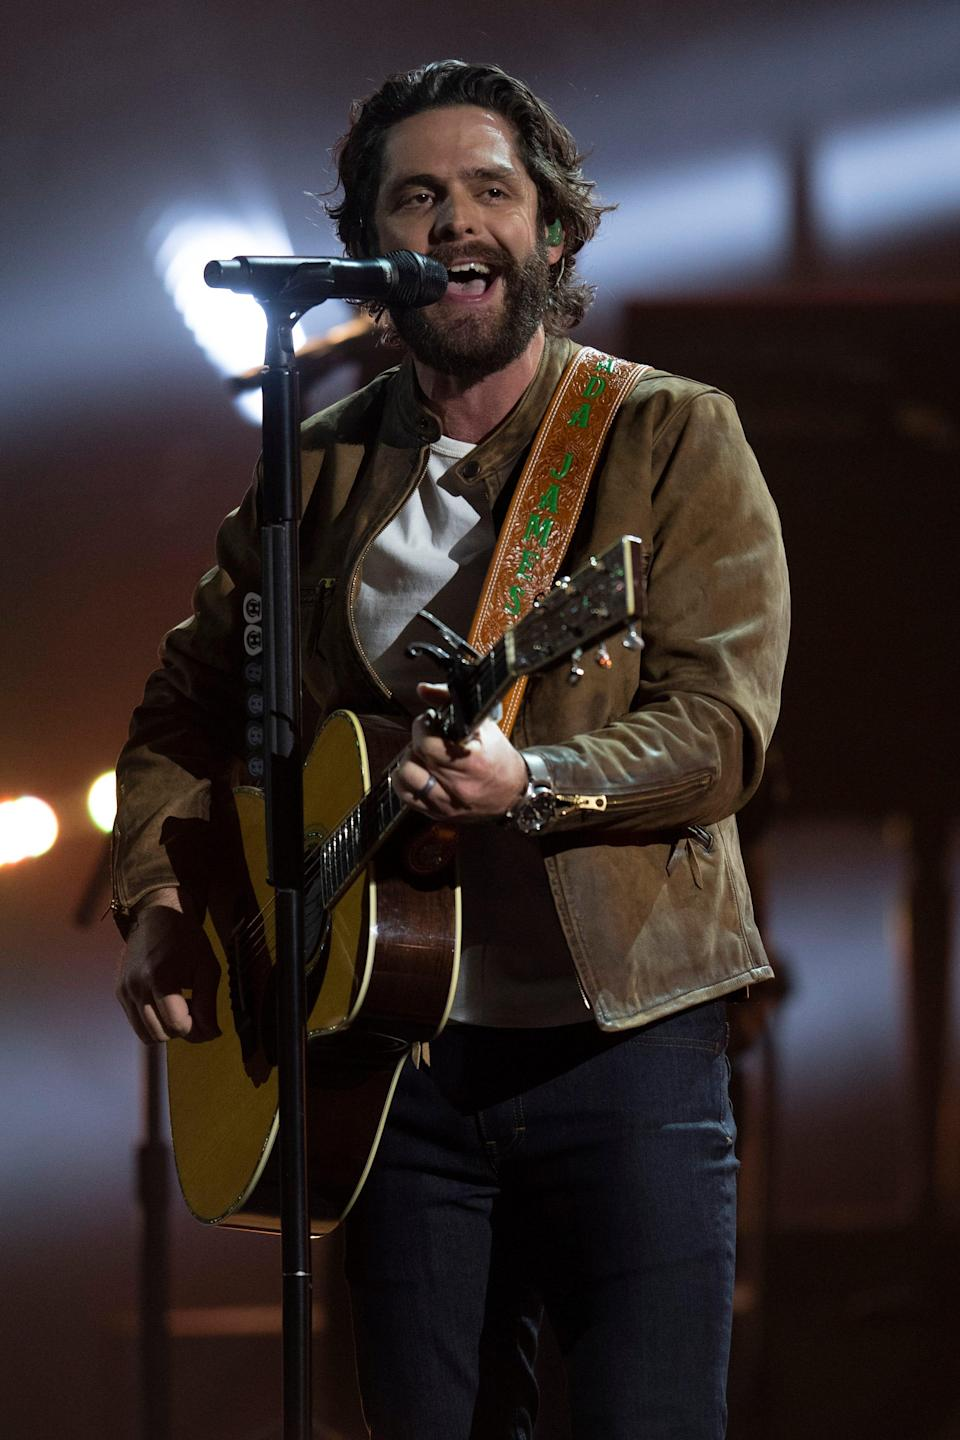 """Thomas Rhett performs """"What's Your Country Song"""" during the 56th Academy of Country Music Awards at the Grand Ole Opry Saturday, April 17, 2021 in Nashville, Tenn."""